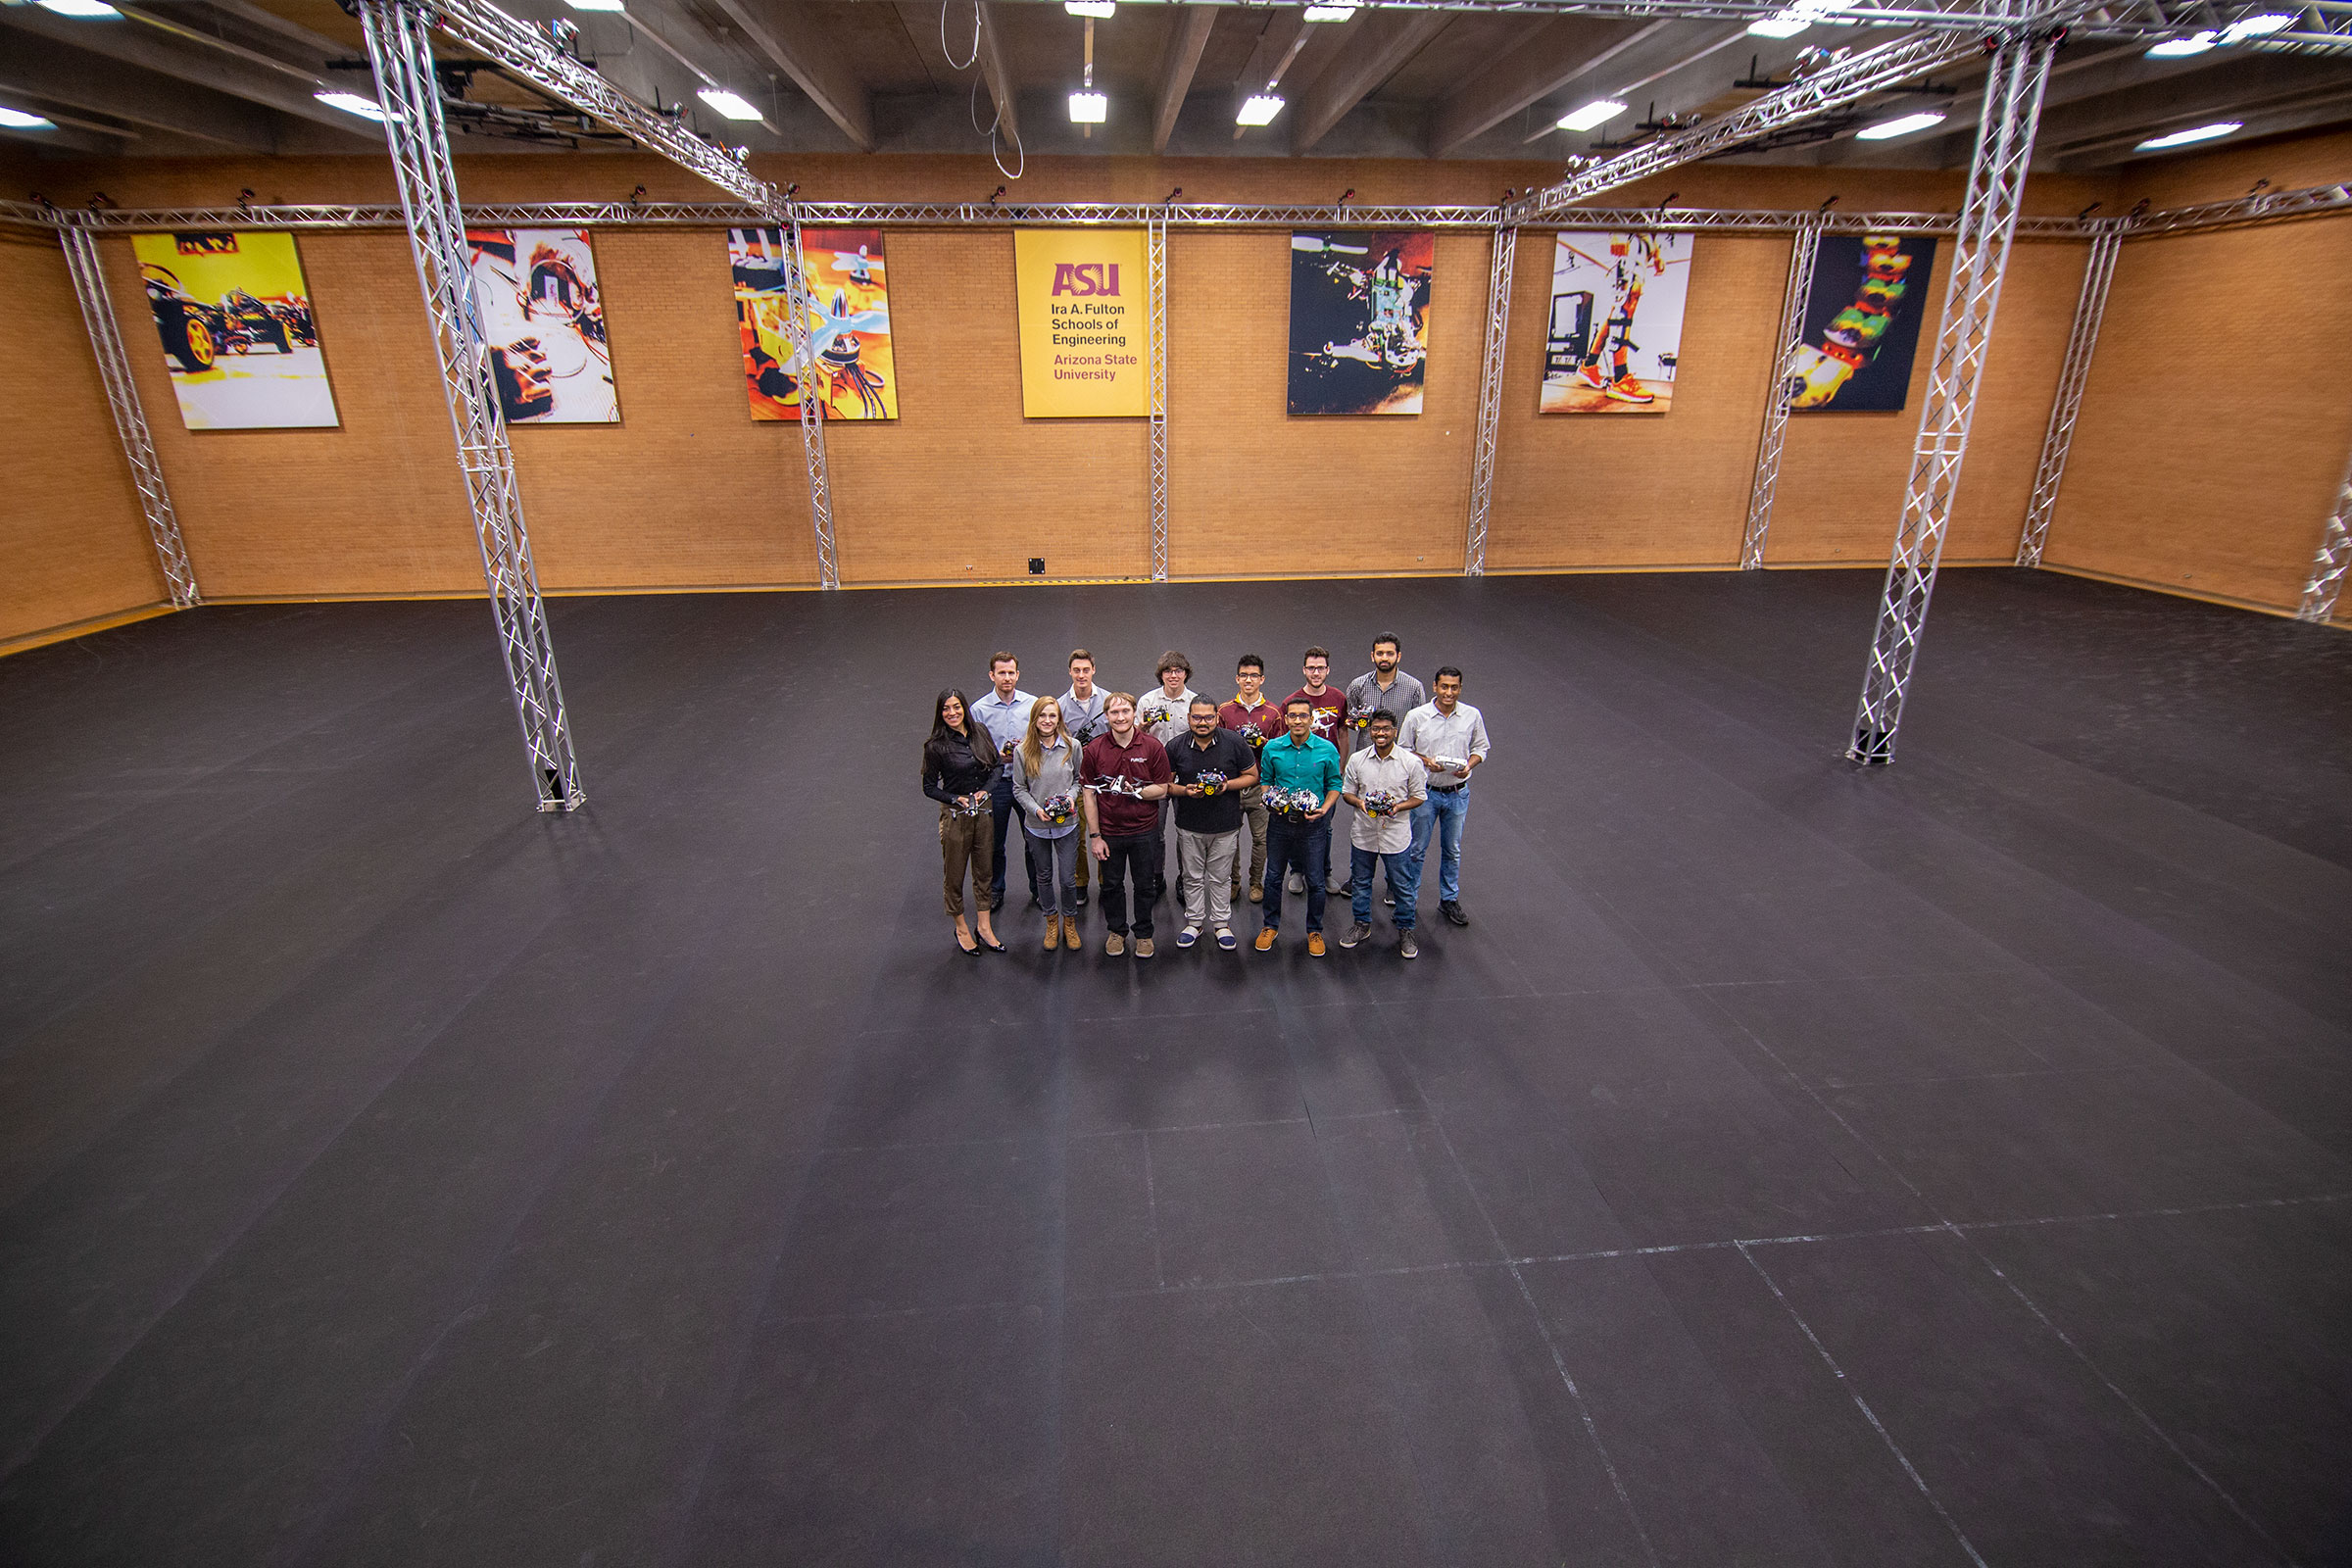 A group of about 20 researchers stand in the middle of the immense ASU Drone Studio, surrounded by tons of open space.